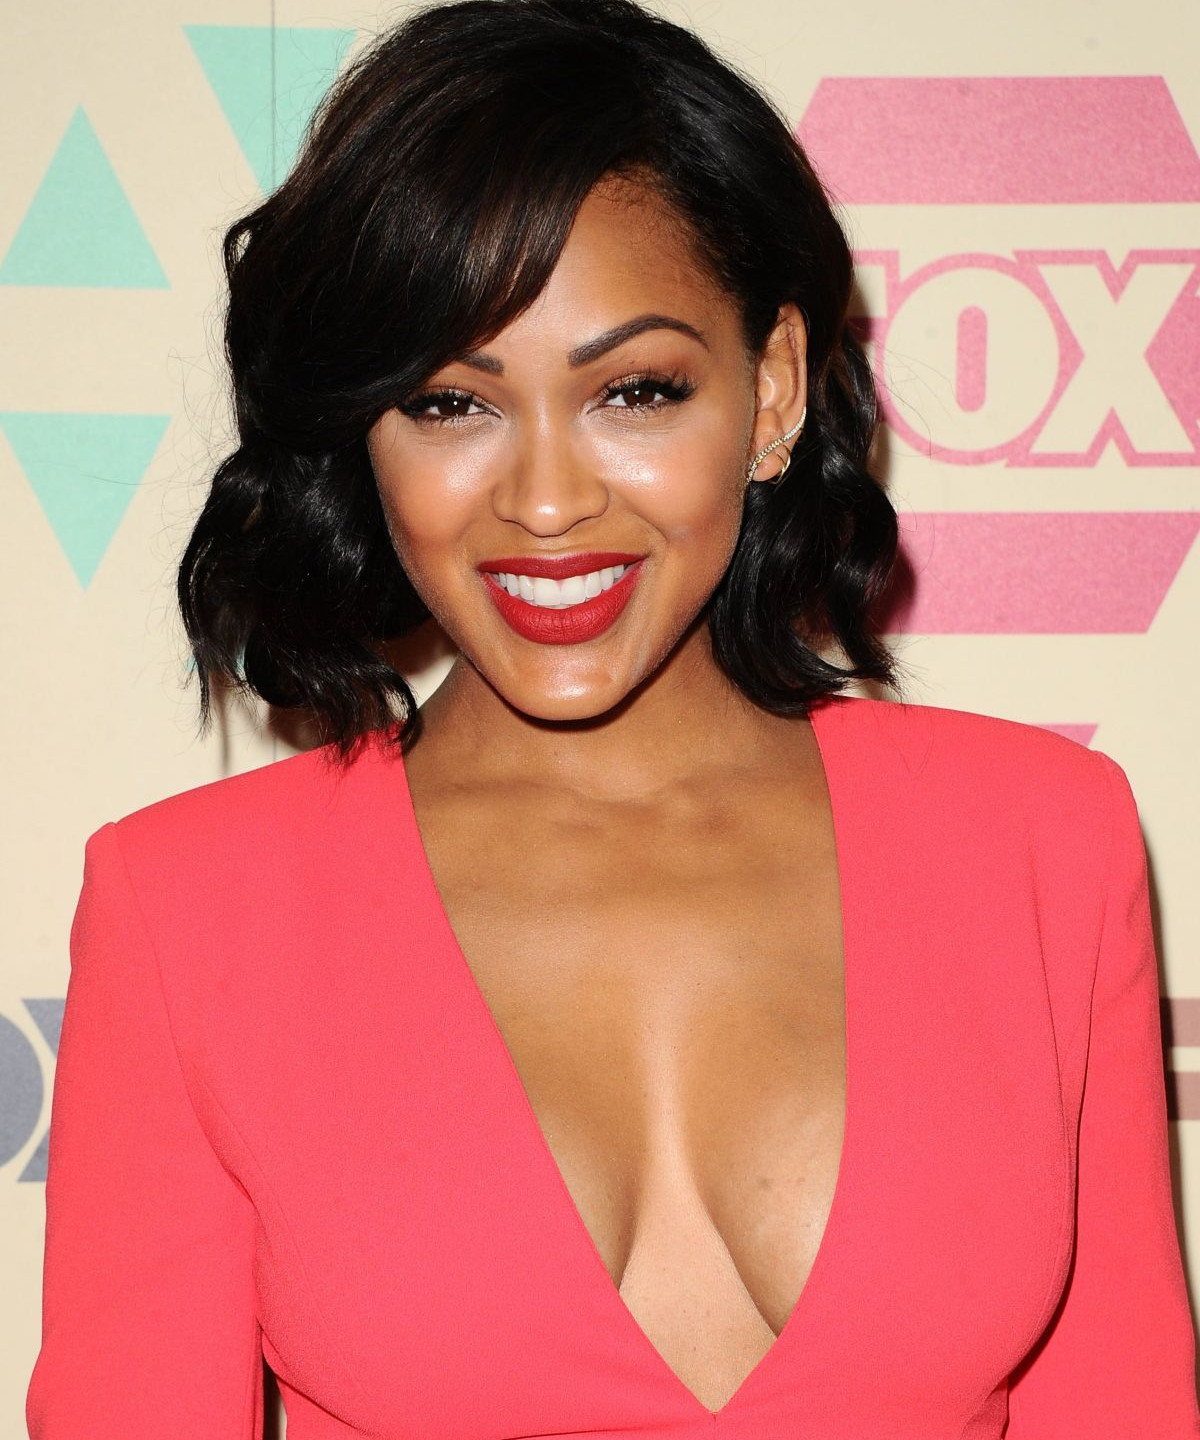 meagan-good-at-fox-fx-summer-2015-tca-party-in-west-hollywood_1